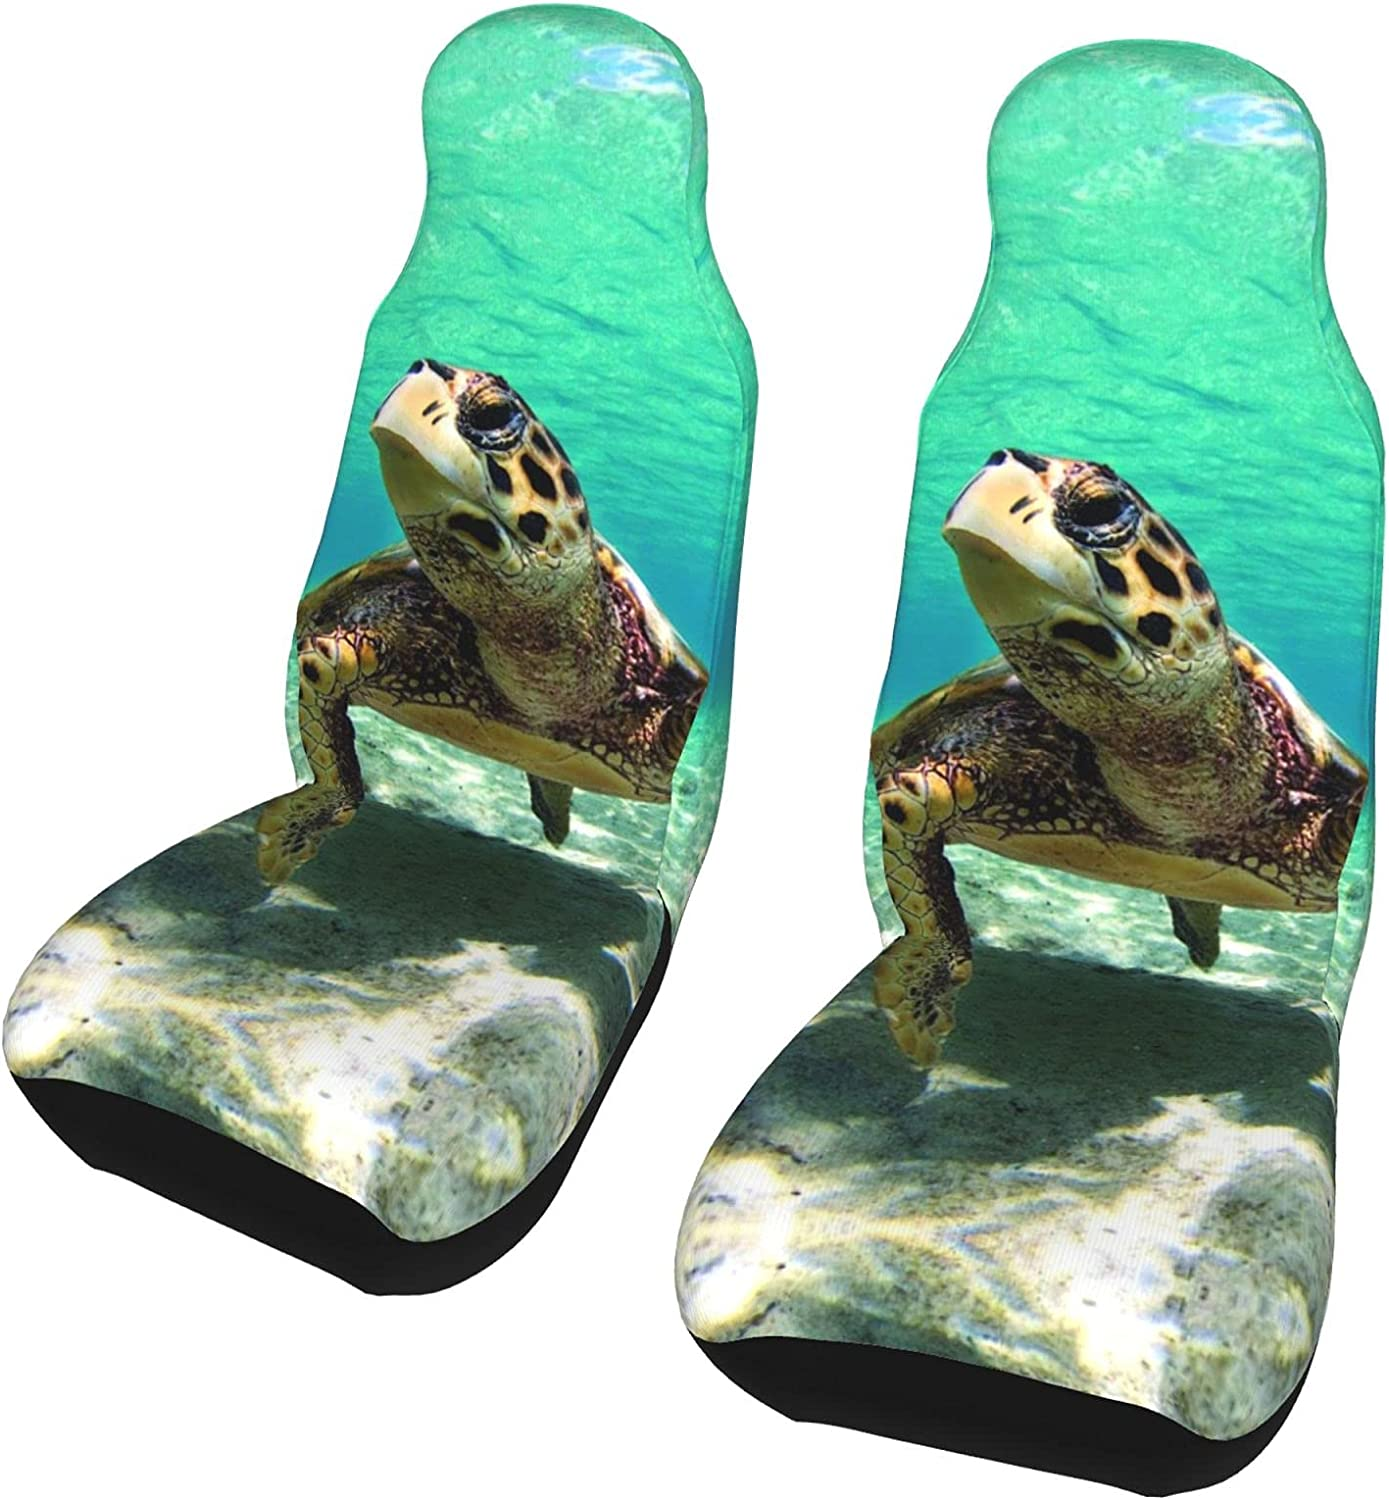 JOEKAORY Seaturtle in Shallow Sea Print seat Save money 2 Department store Car Cus pc Covers